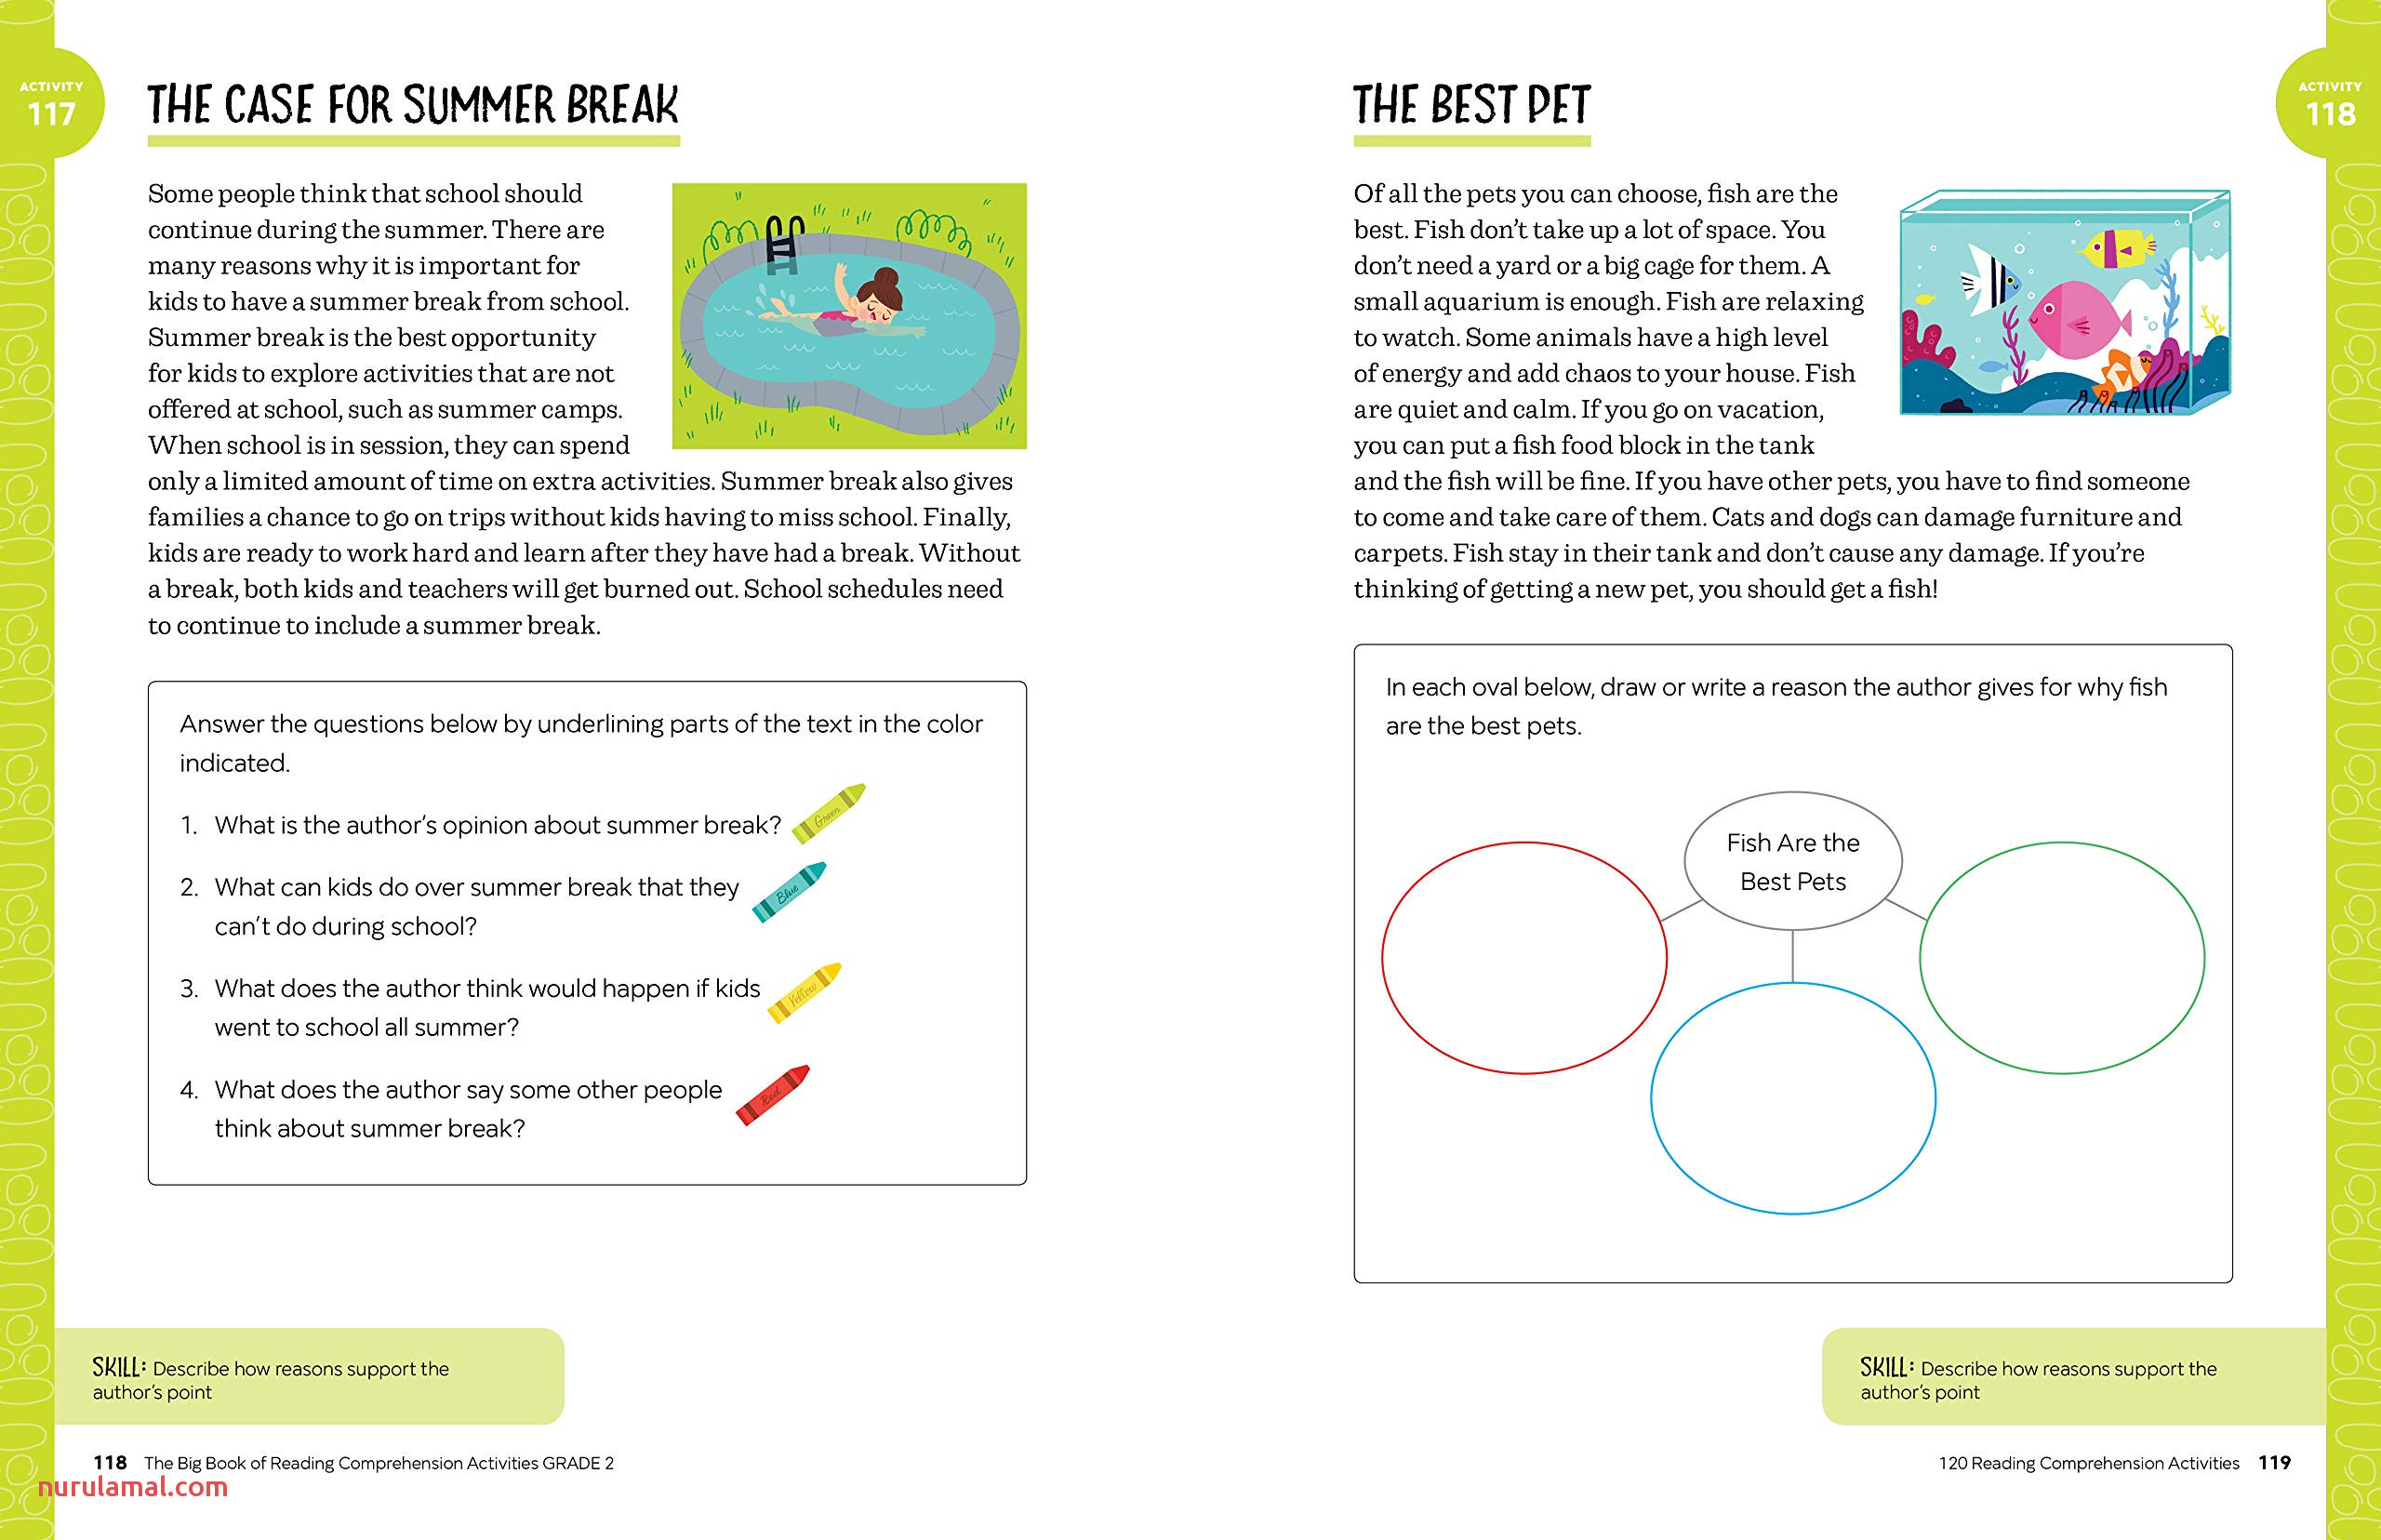 prehension worksheets for kids 81a6vrfmmol worksheet ideas easy reading stories free 6th grade printable sheets on black beauty